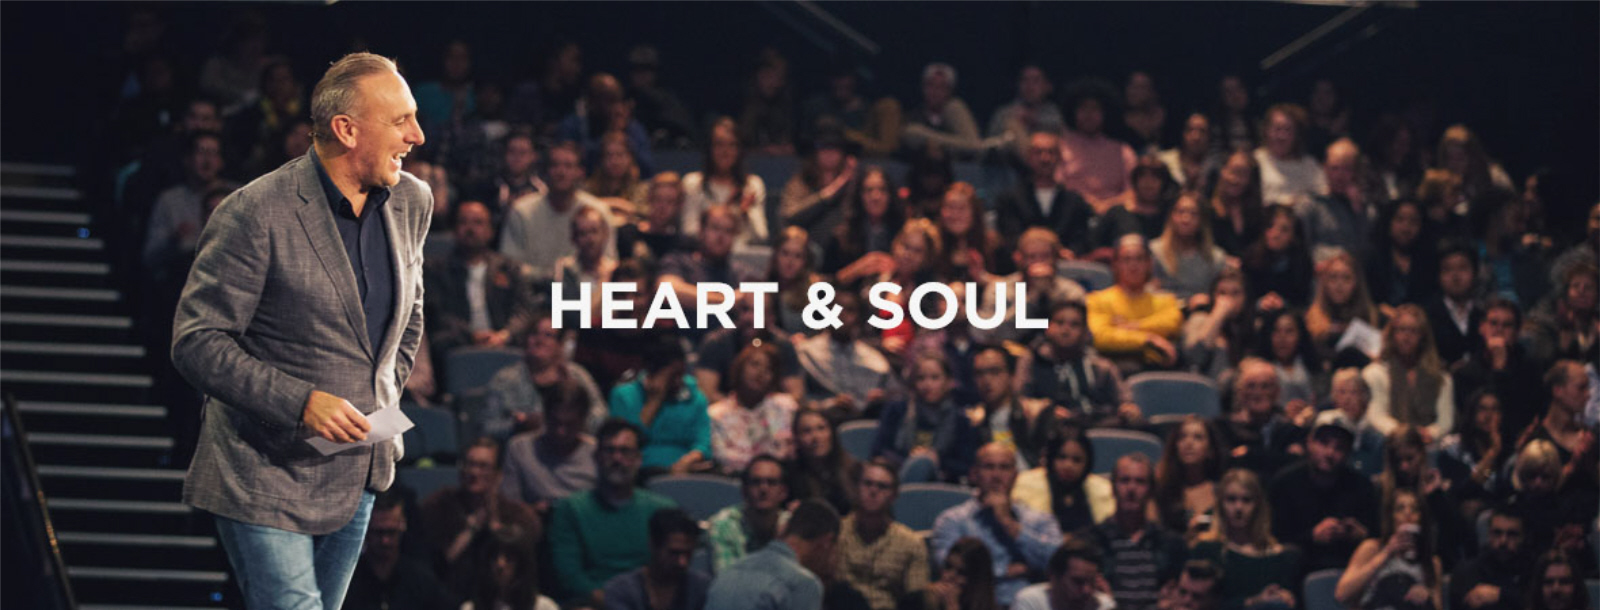 Heart & Soul with Ps Brian Houston